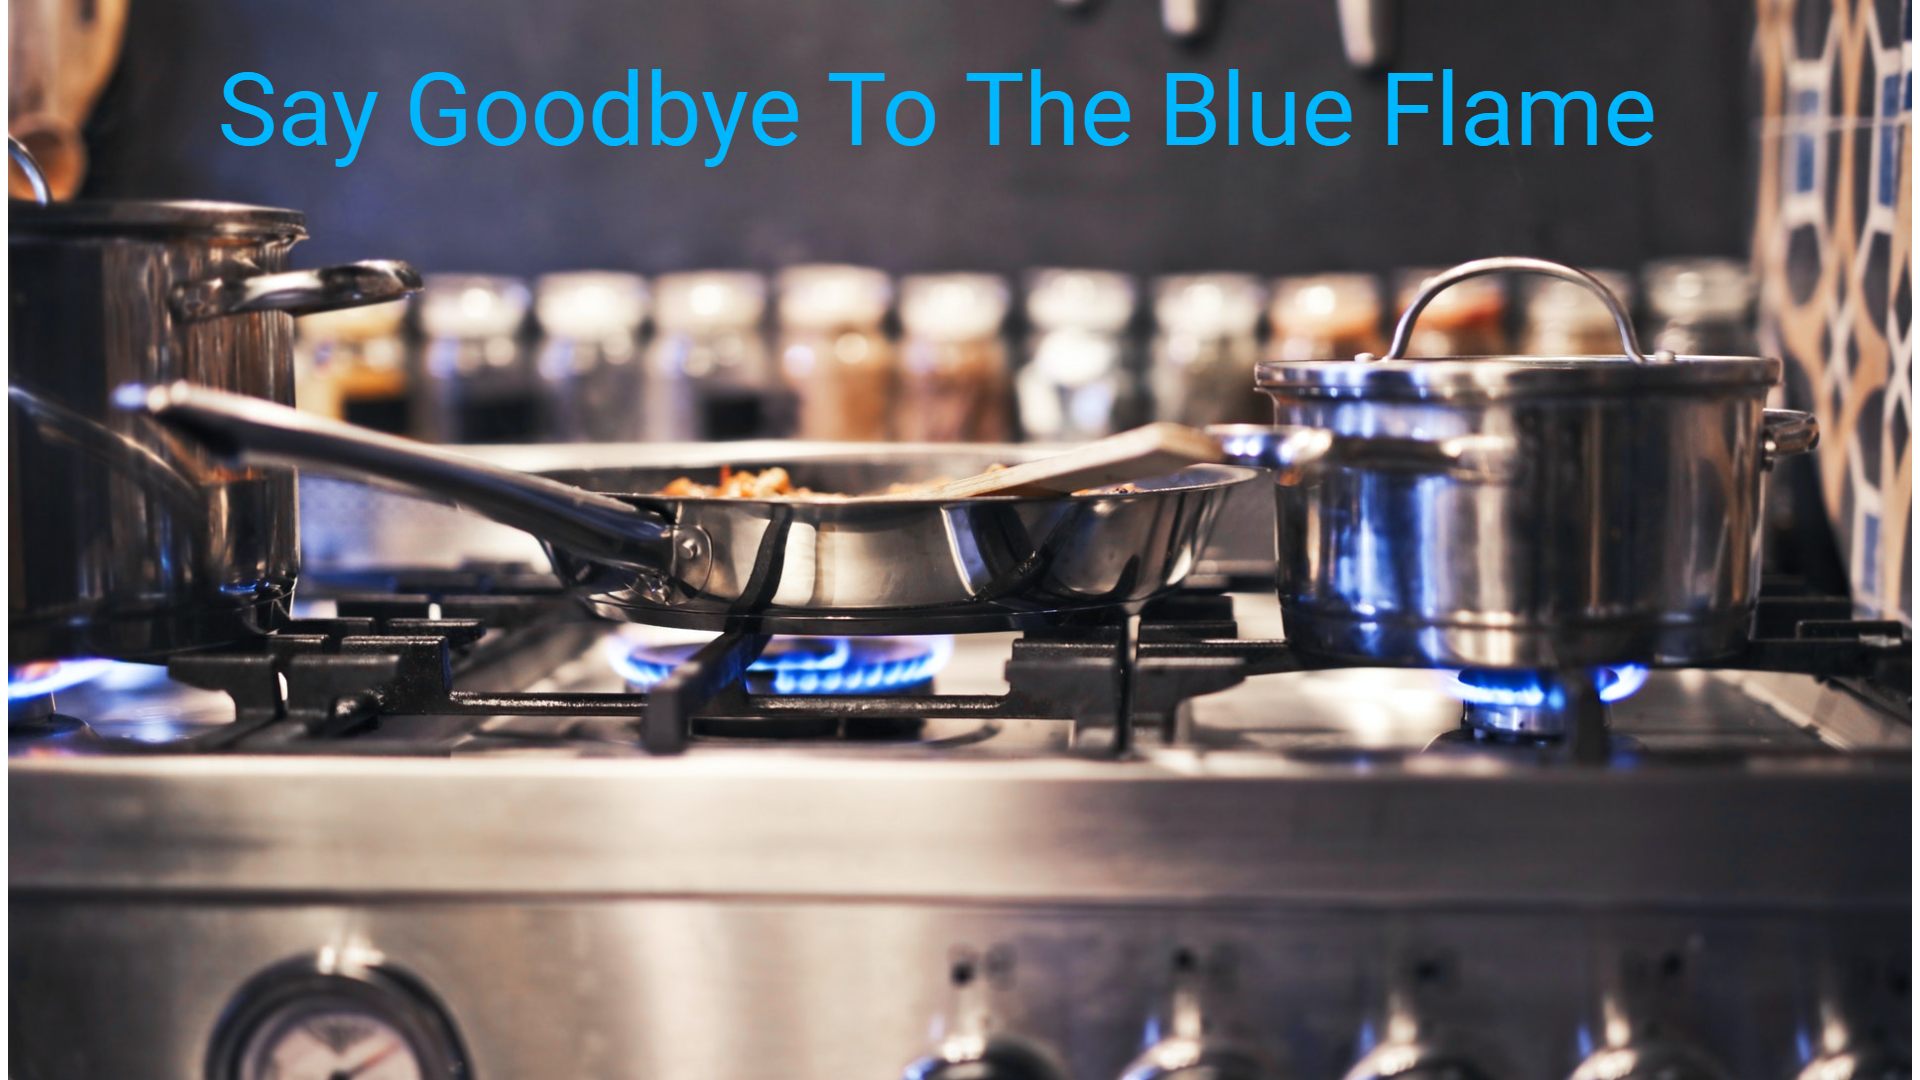 Say Goodbye to the blue flame